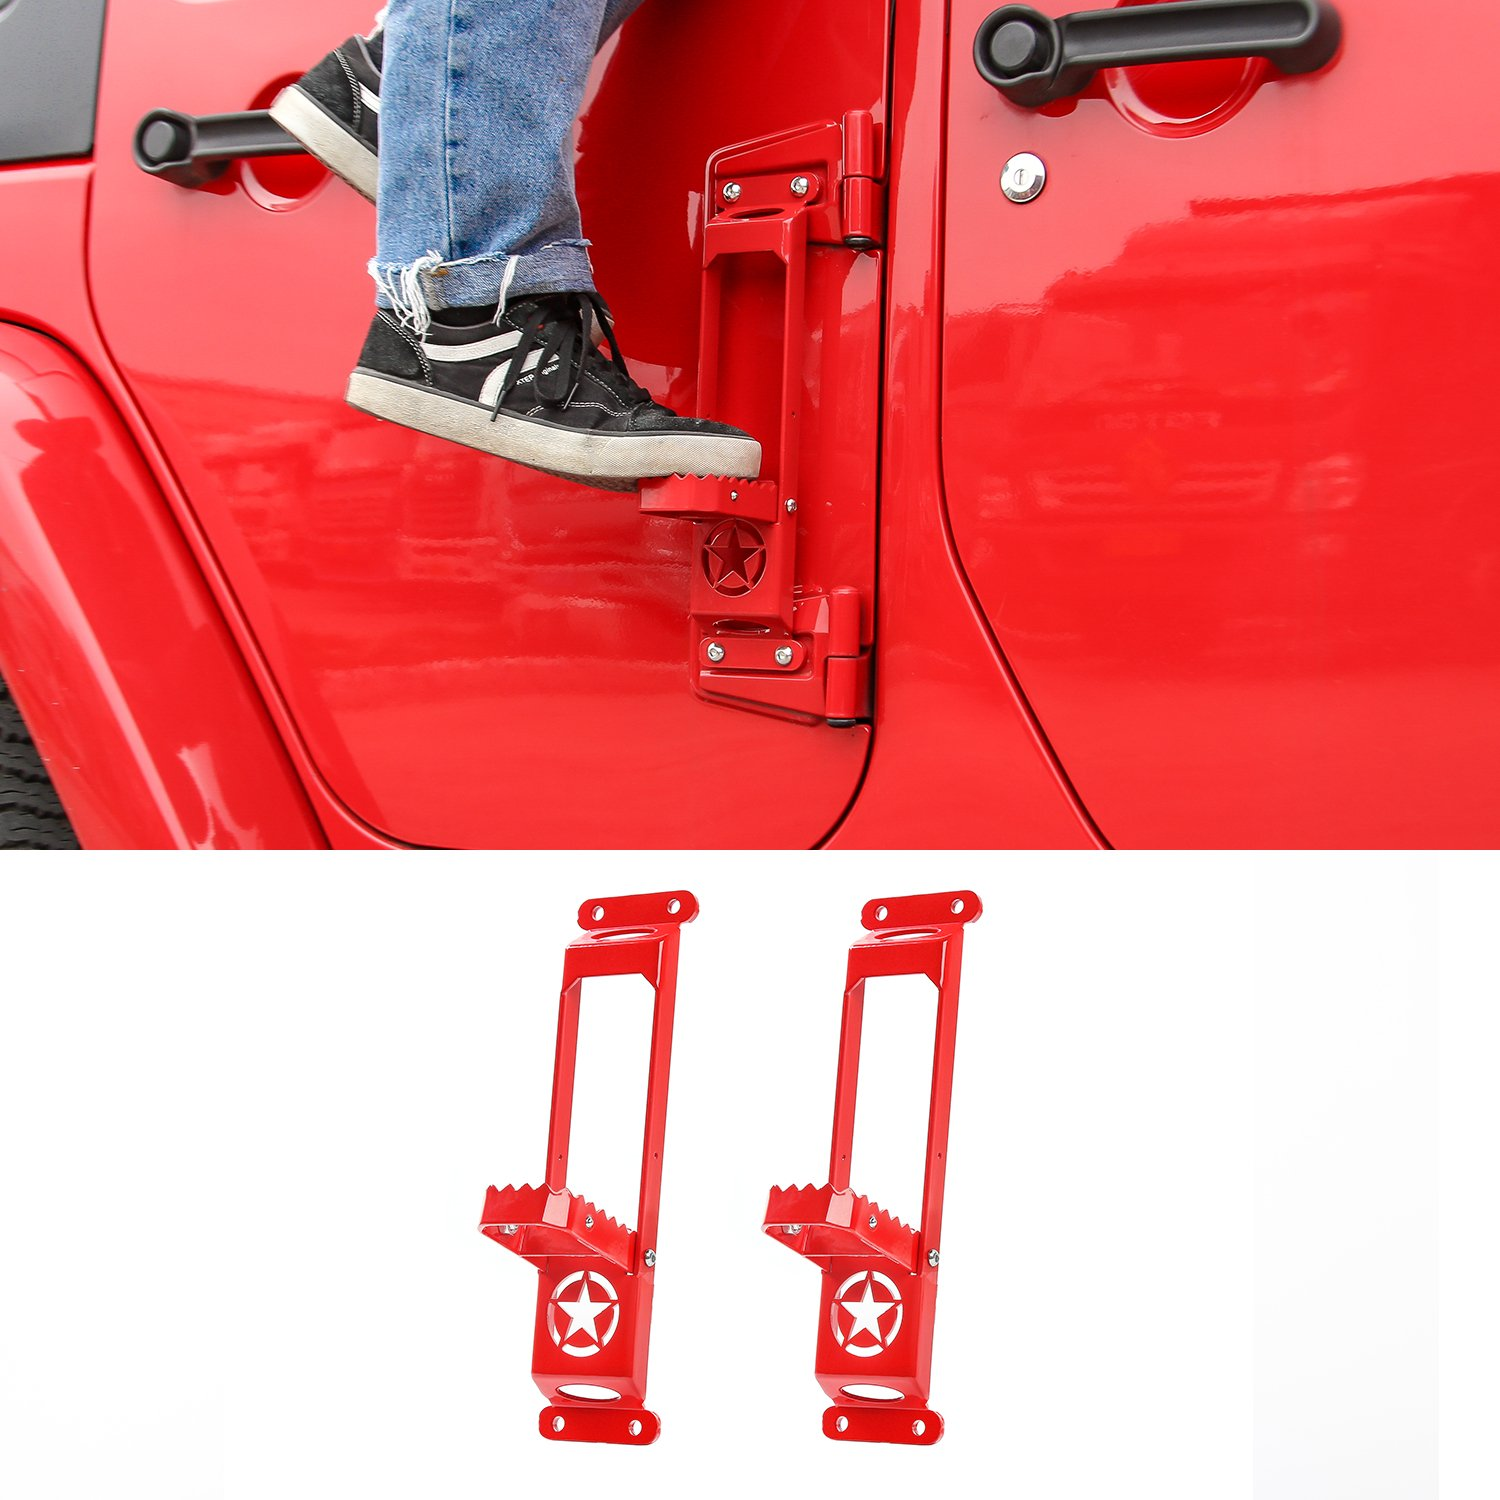 Door Hinge Step Foot Peg Folding Foot Pedal, Easy Access to Car Rooftop for 2007-2018 Jeep Wrangler JK JKU JL JLU (2 Pack, Red) by RT-TCZ